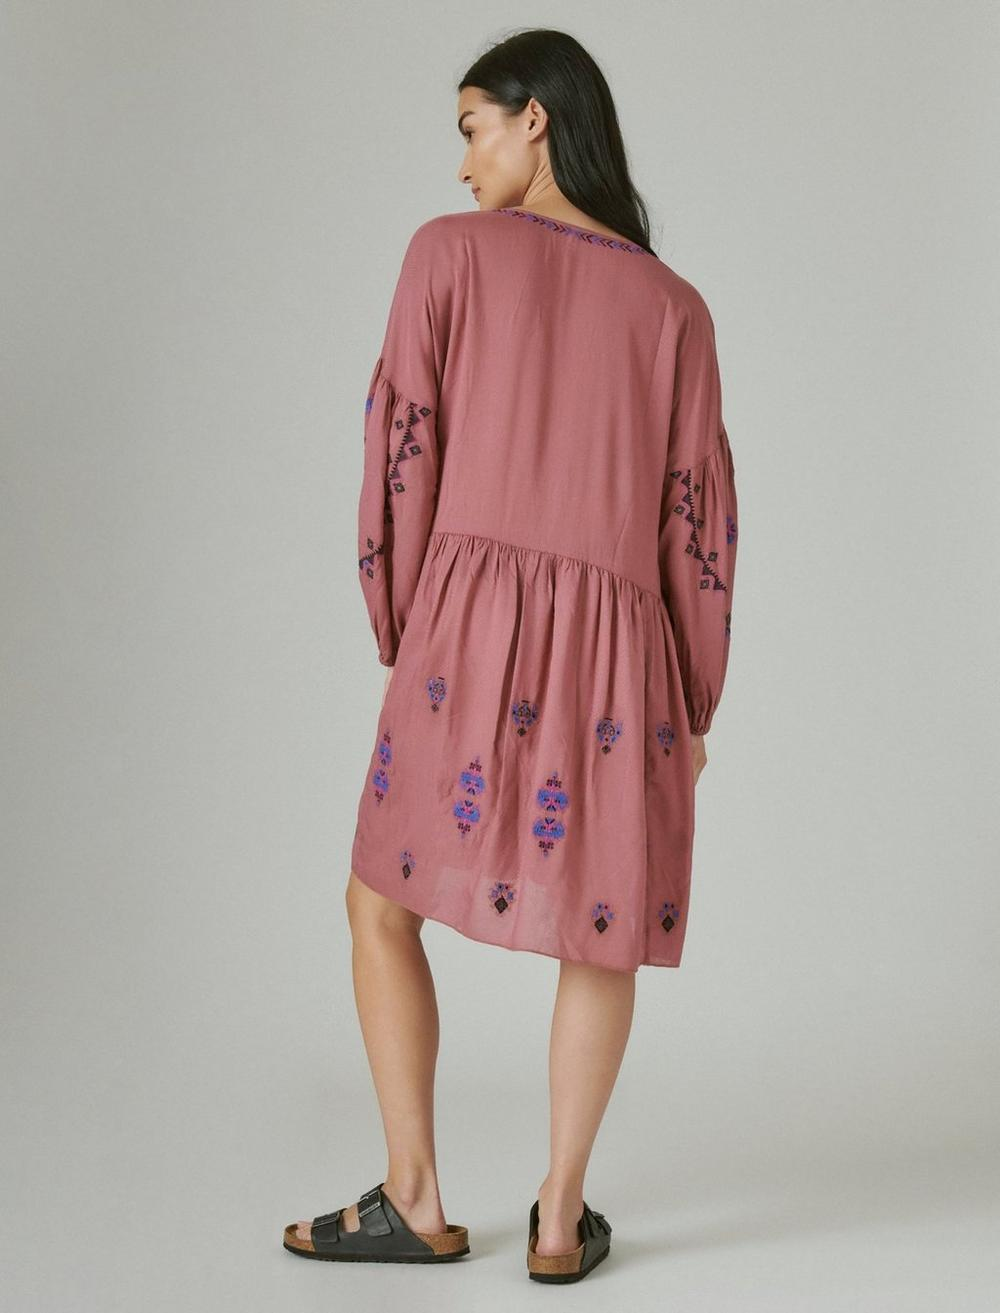 EMBROIDERED TIERED DRESS, image 3